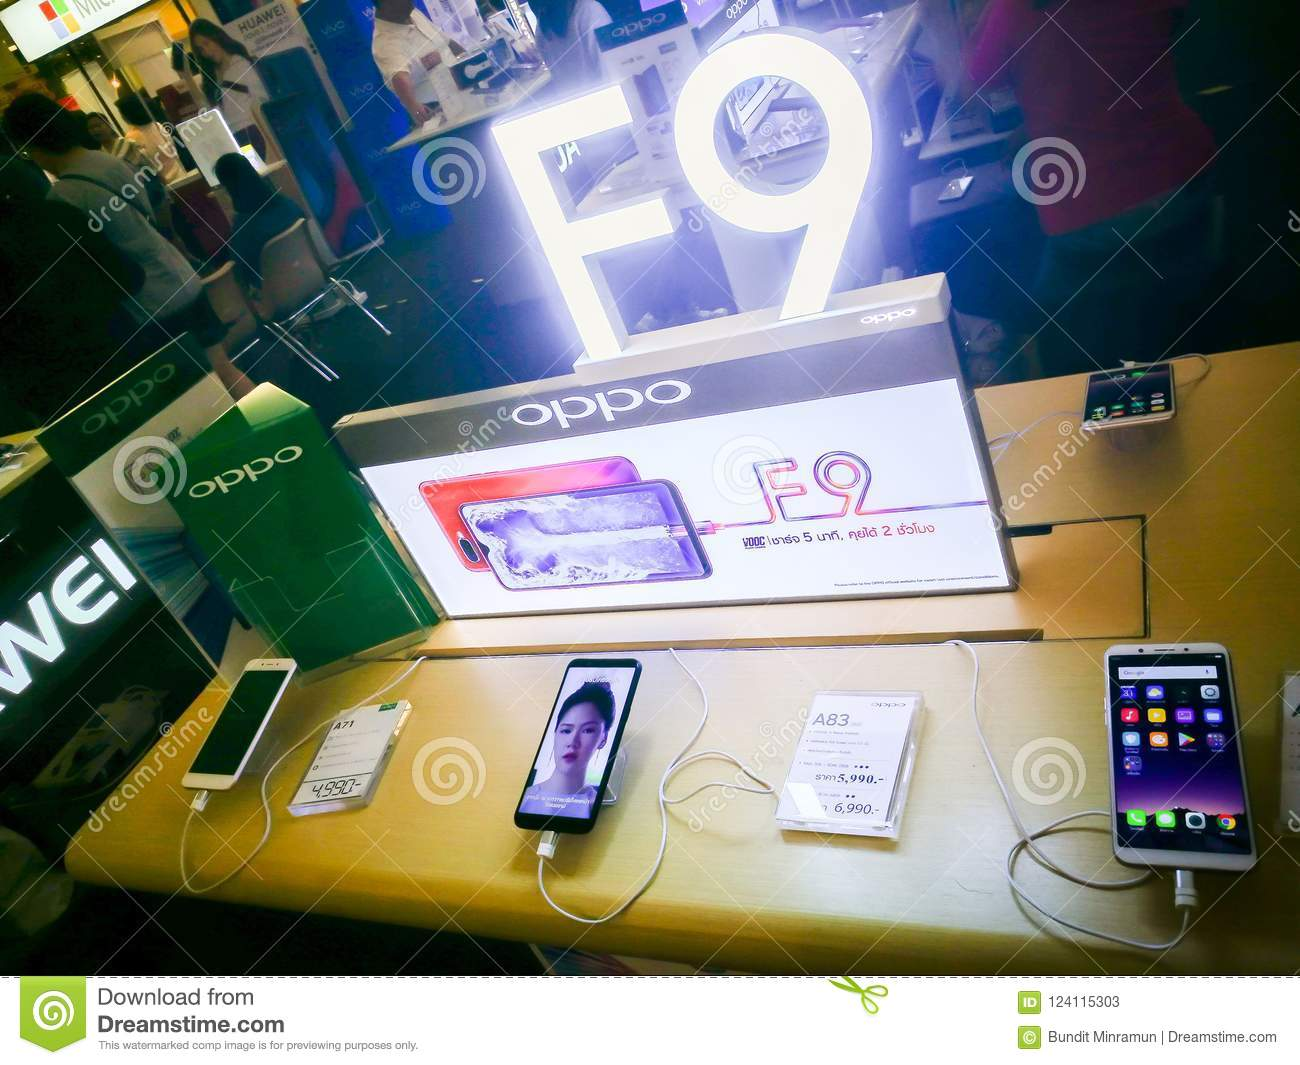 Oppo F9 Mobile Phone Displaying At Digital Gadget Expo